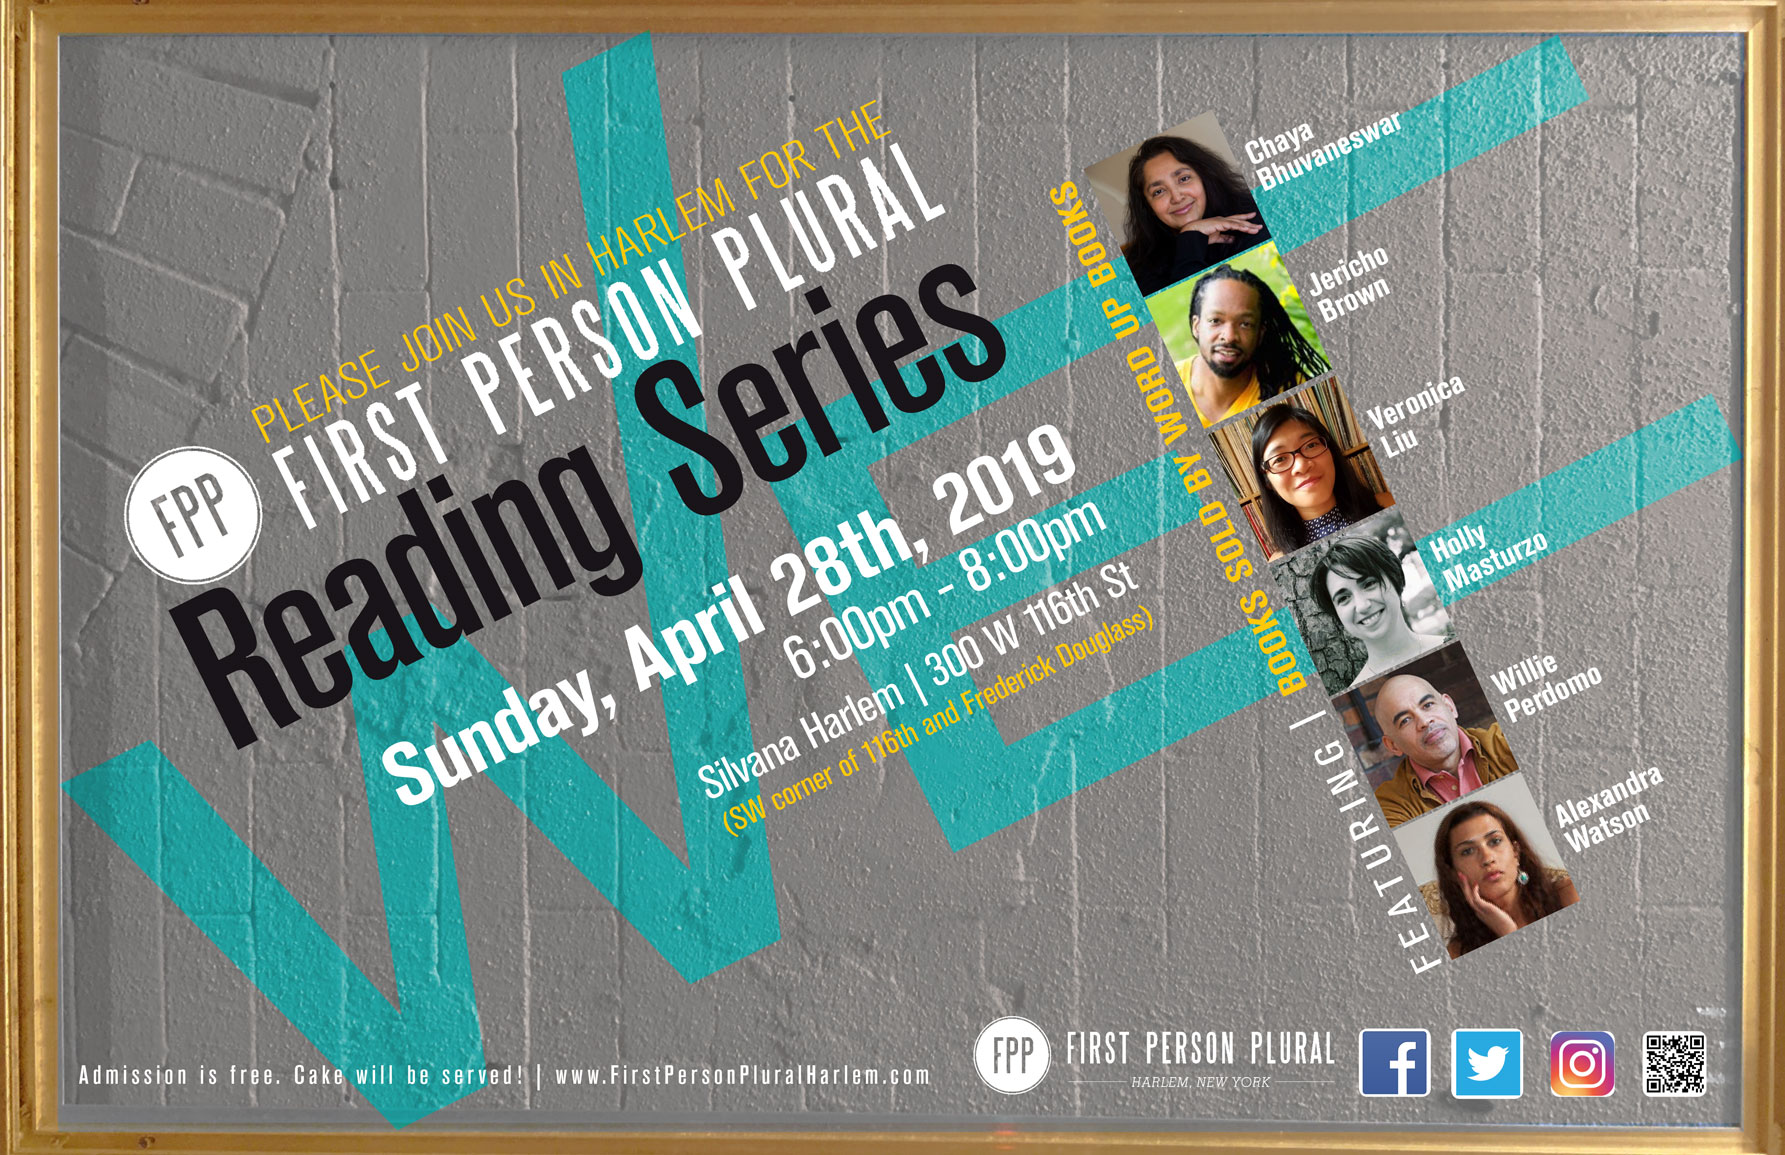 First Person Plural Reading Series | Literary and Arts Events in Harlem